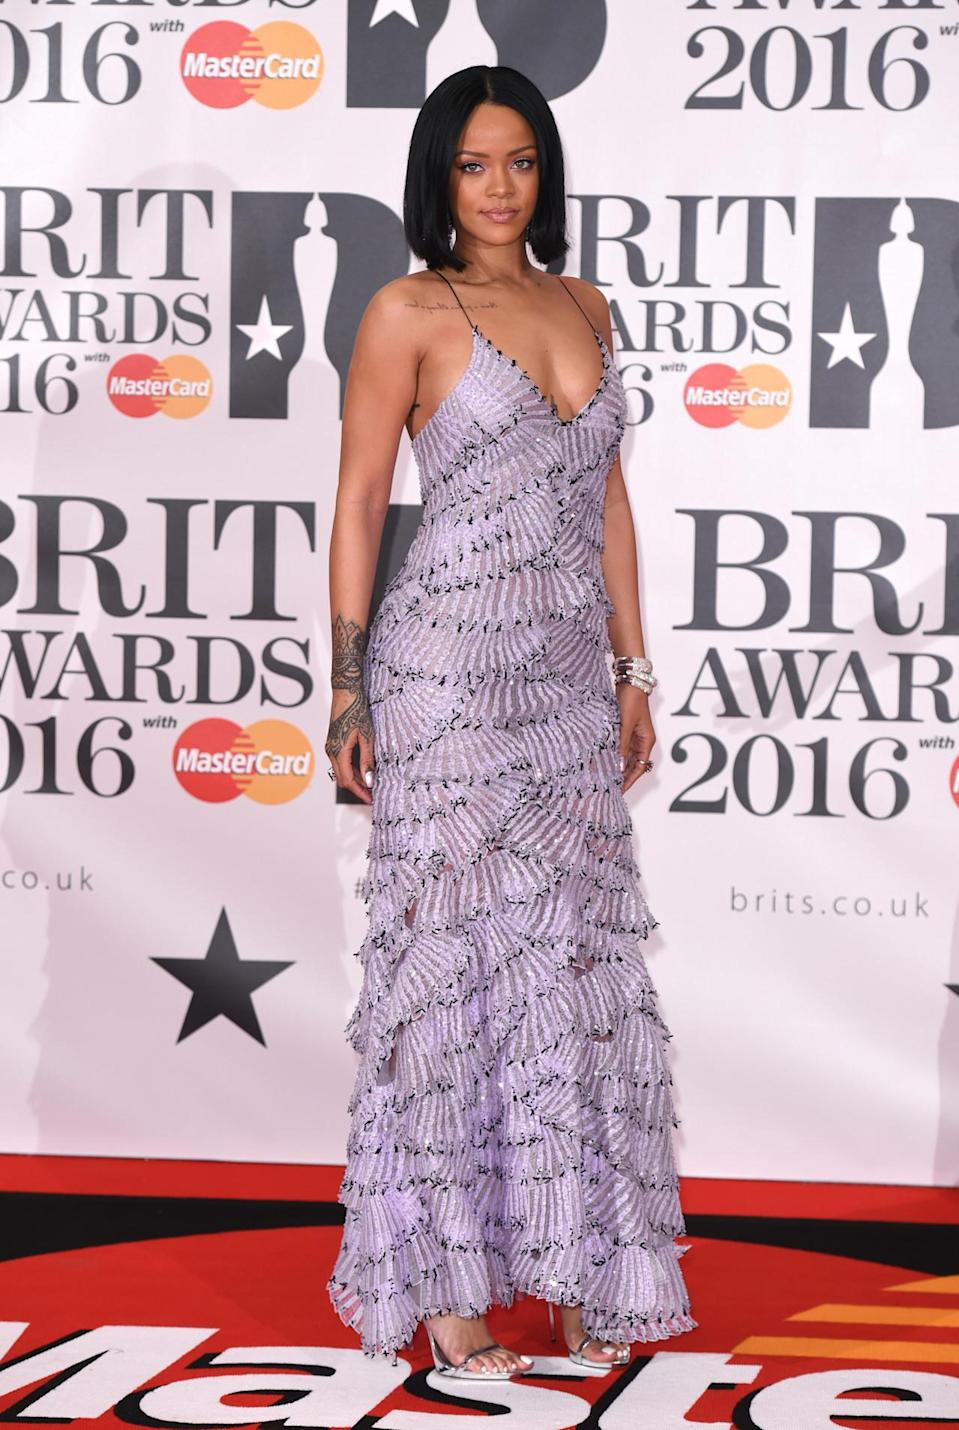 <p>RiRi nailed it in this tiered lilac frock by Armani Privé. The perfect choice for standing out from the crowd without looking too try-hard. <i>[Photo: Rex]</i></p>